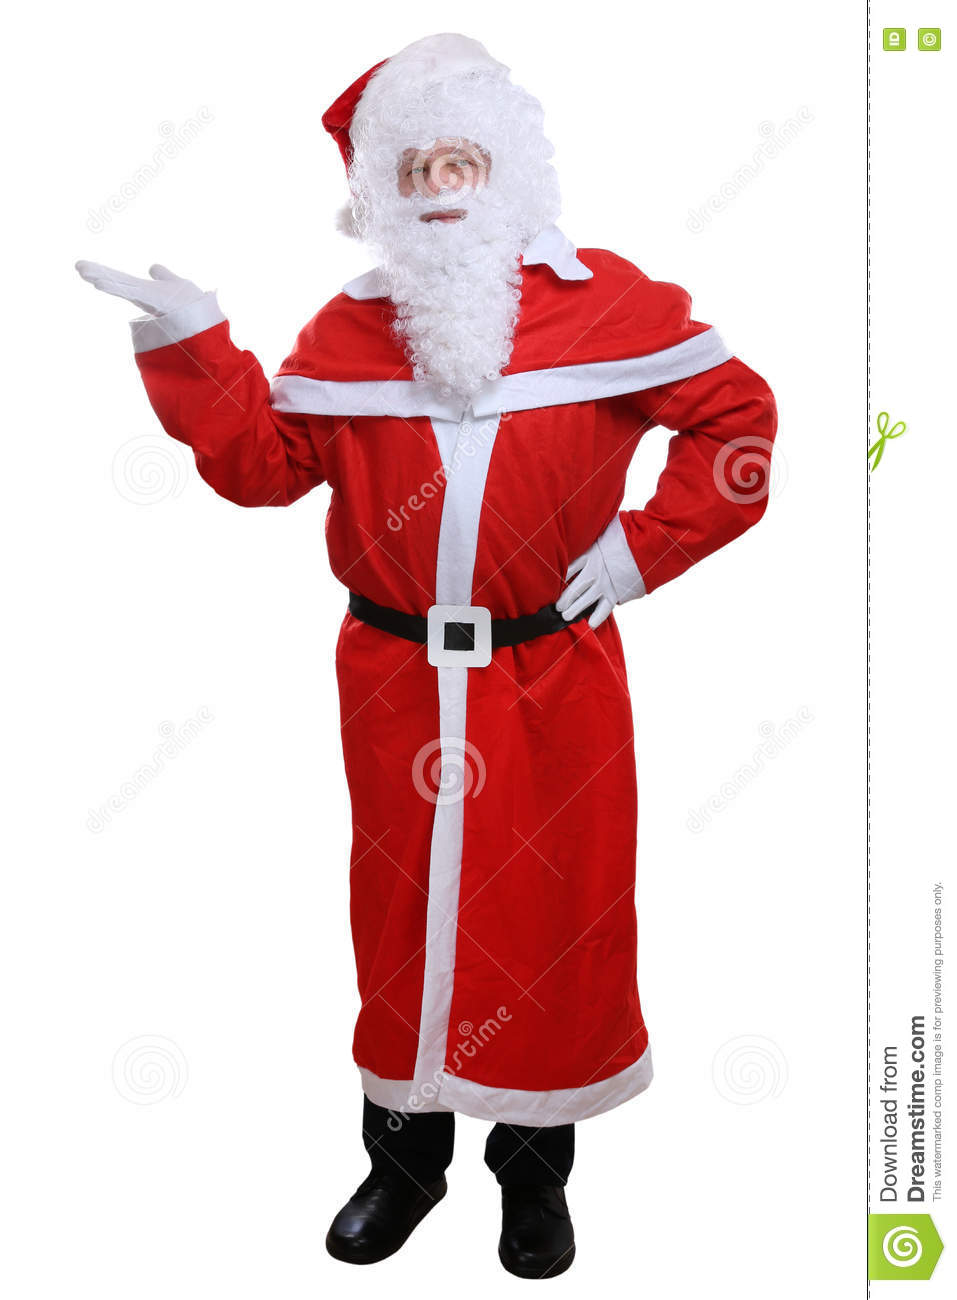 Santa Claus Christmas showing isolated on white